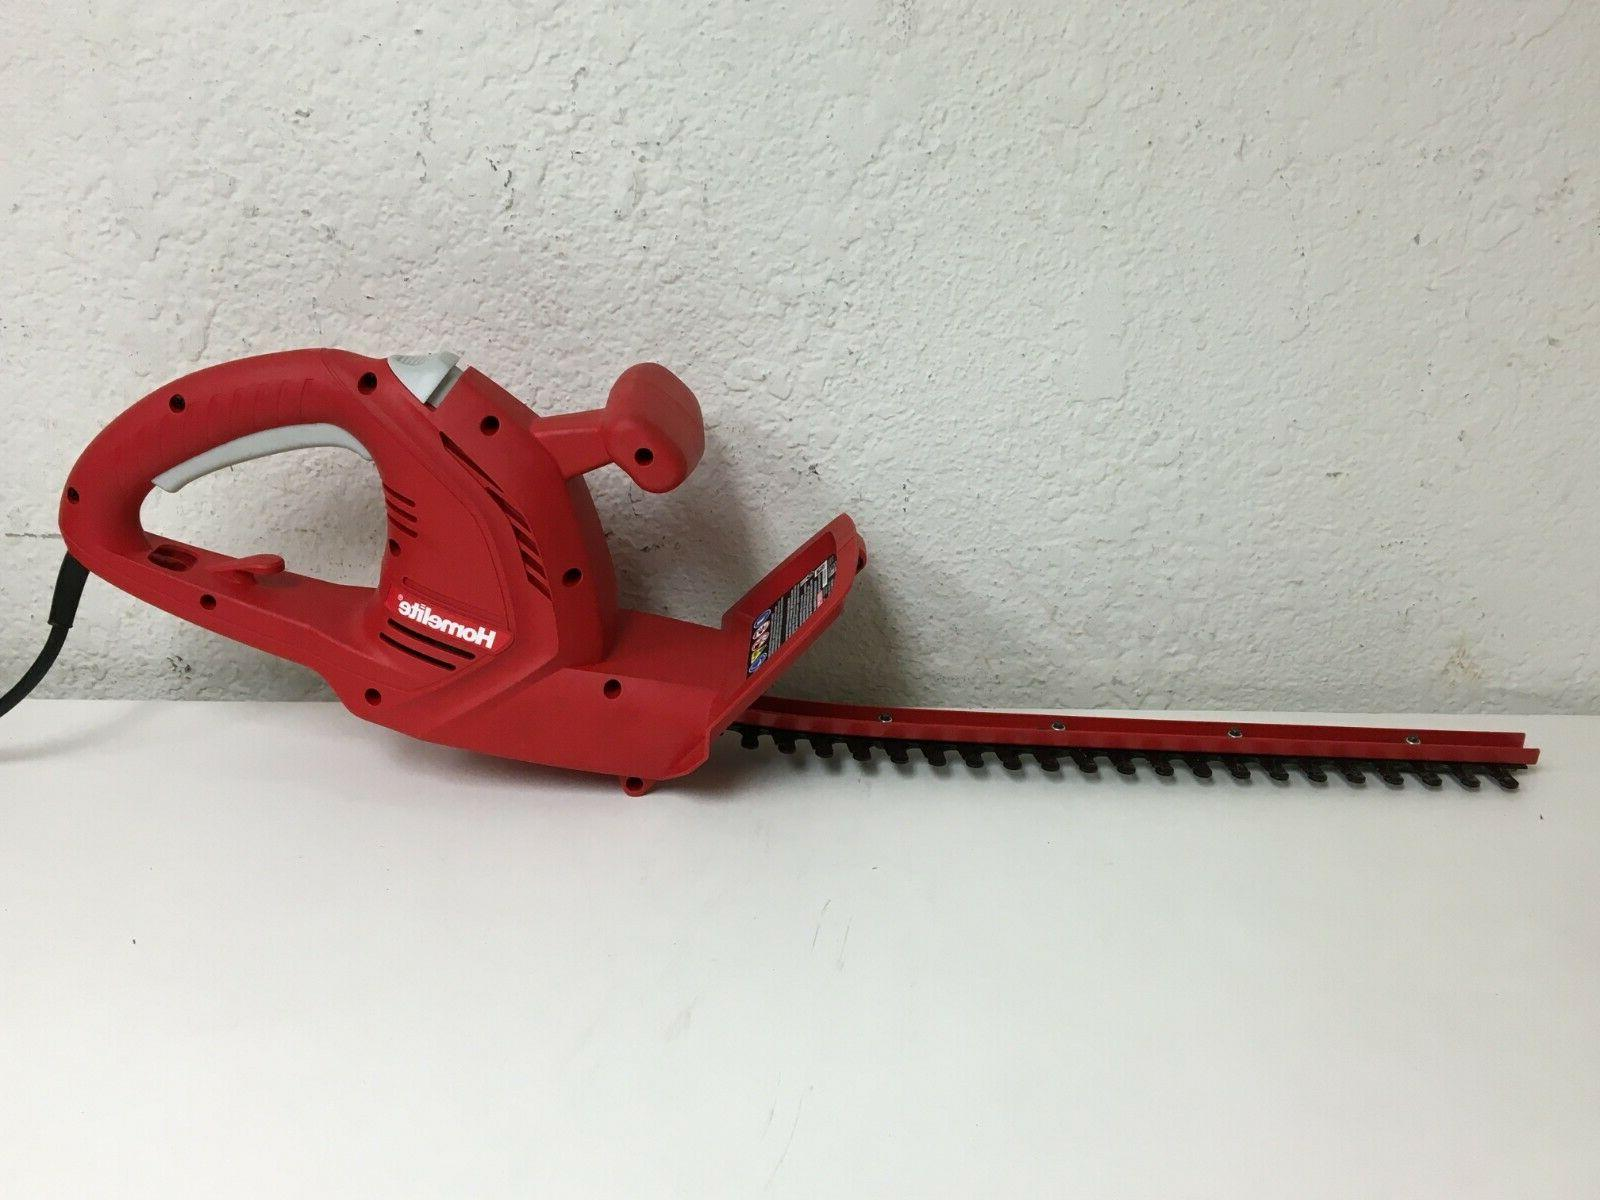 ut44110 electric trimmer 17in action hardened steel